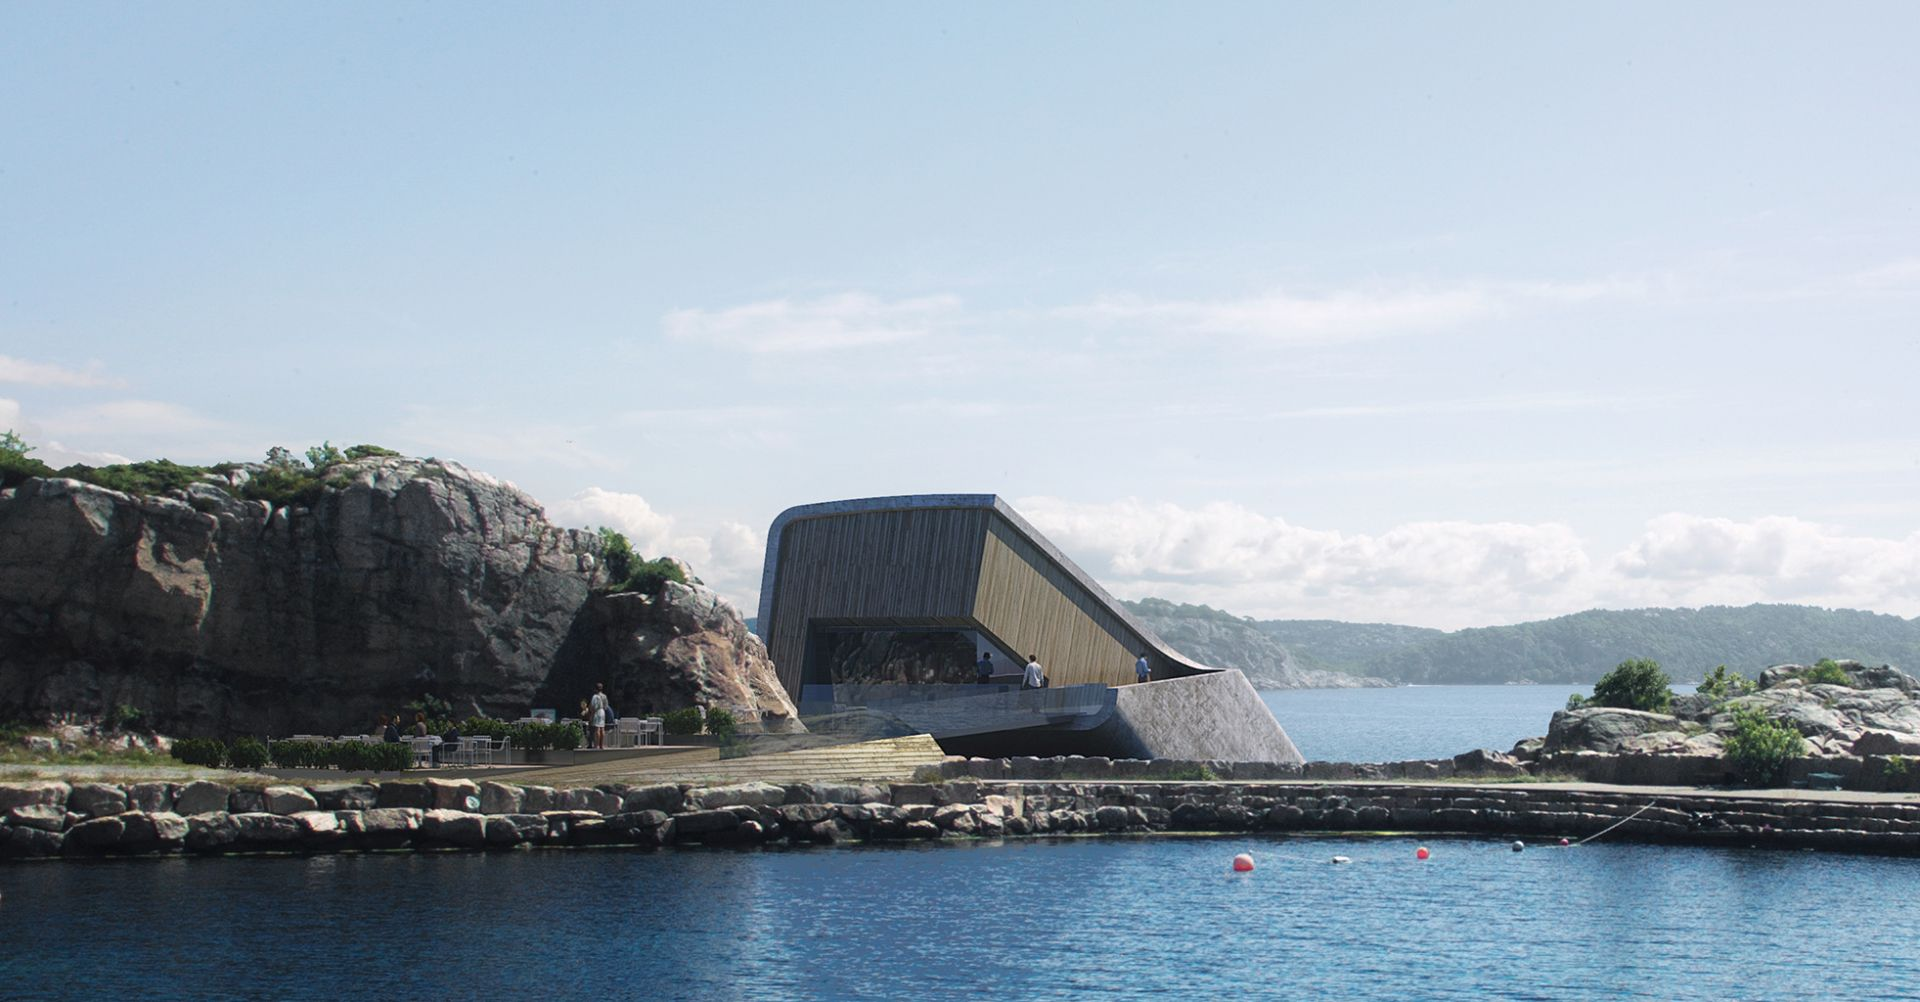 World's largest underwater restaurant poised to make remote Norwegian coast culinary hotspot